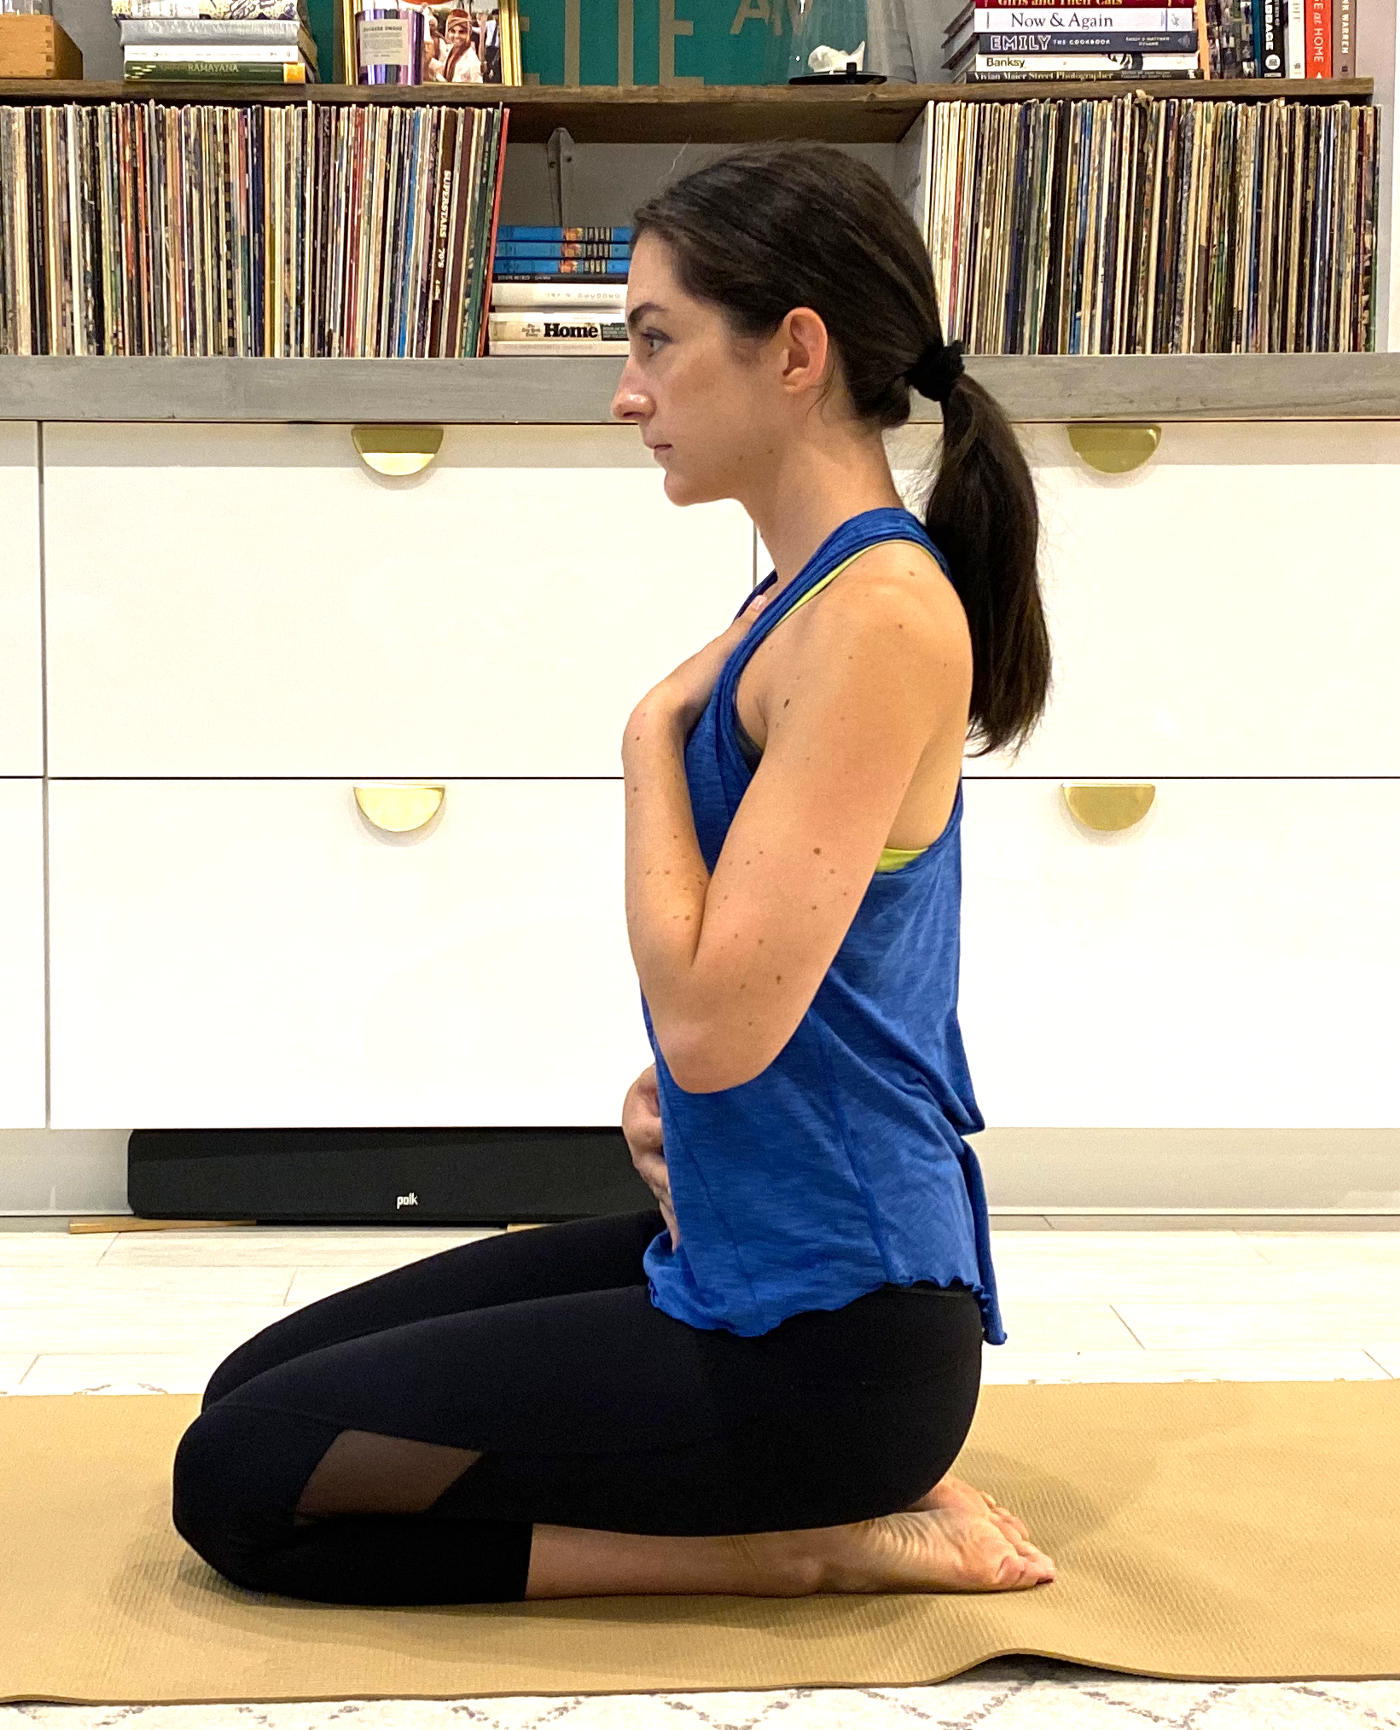 Author on yoga mat touching their stomach